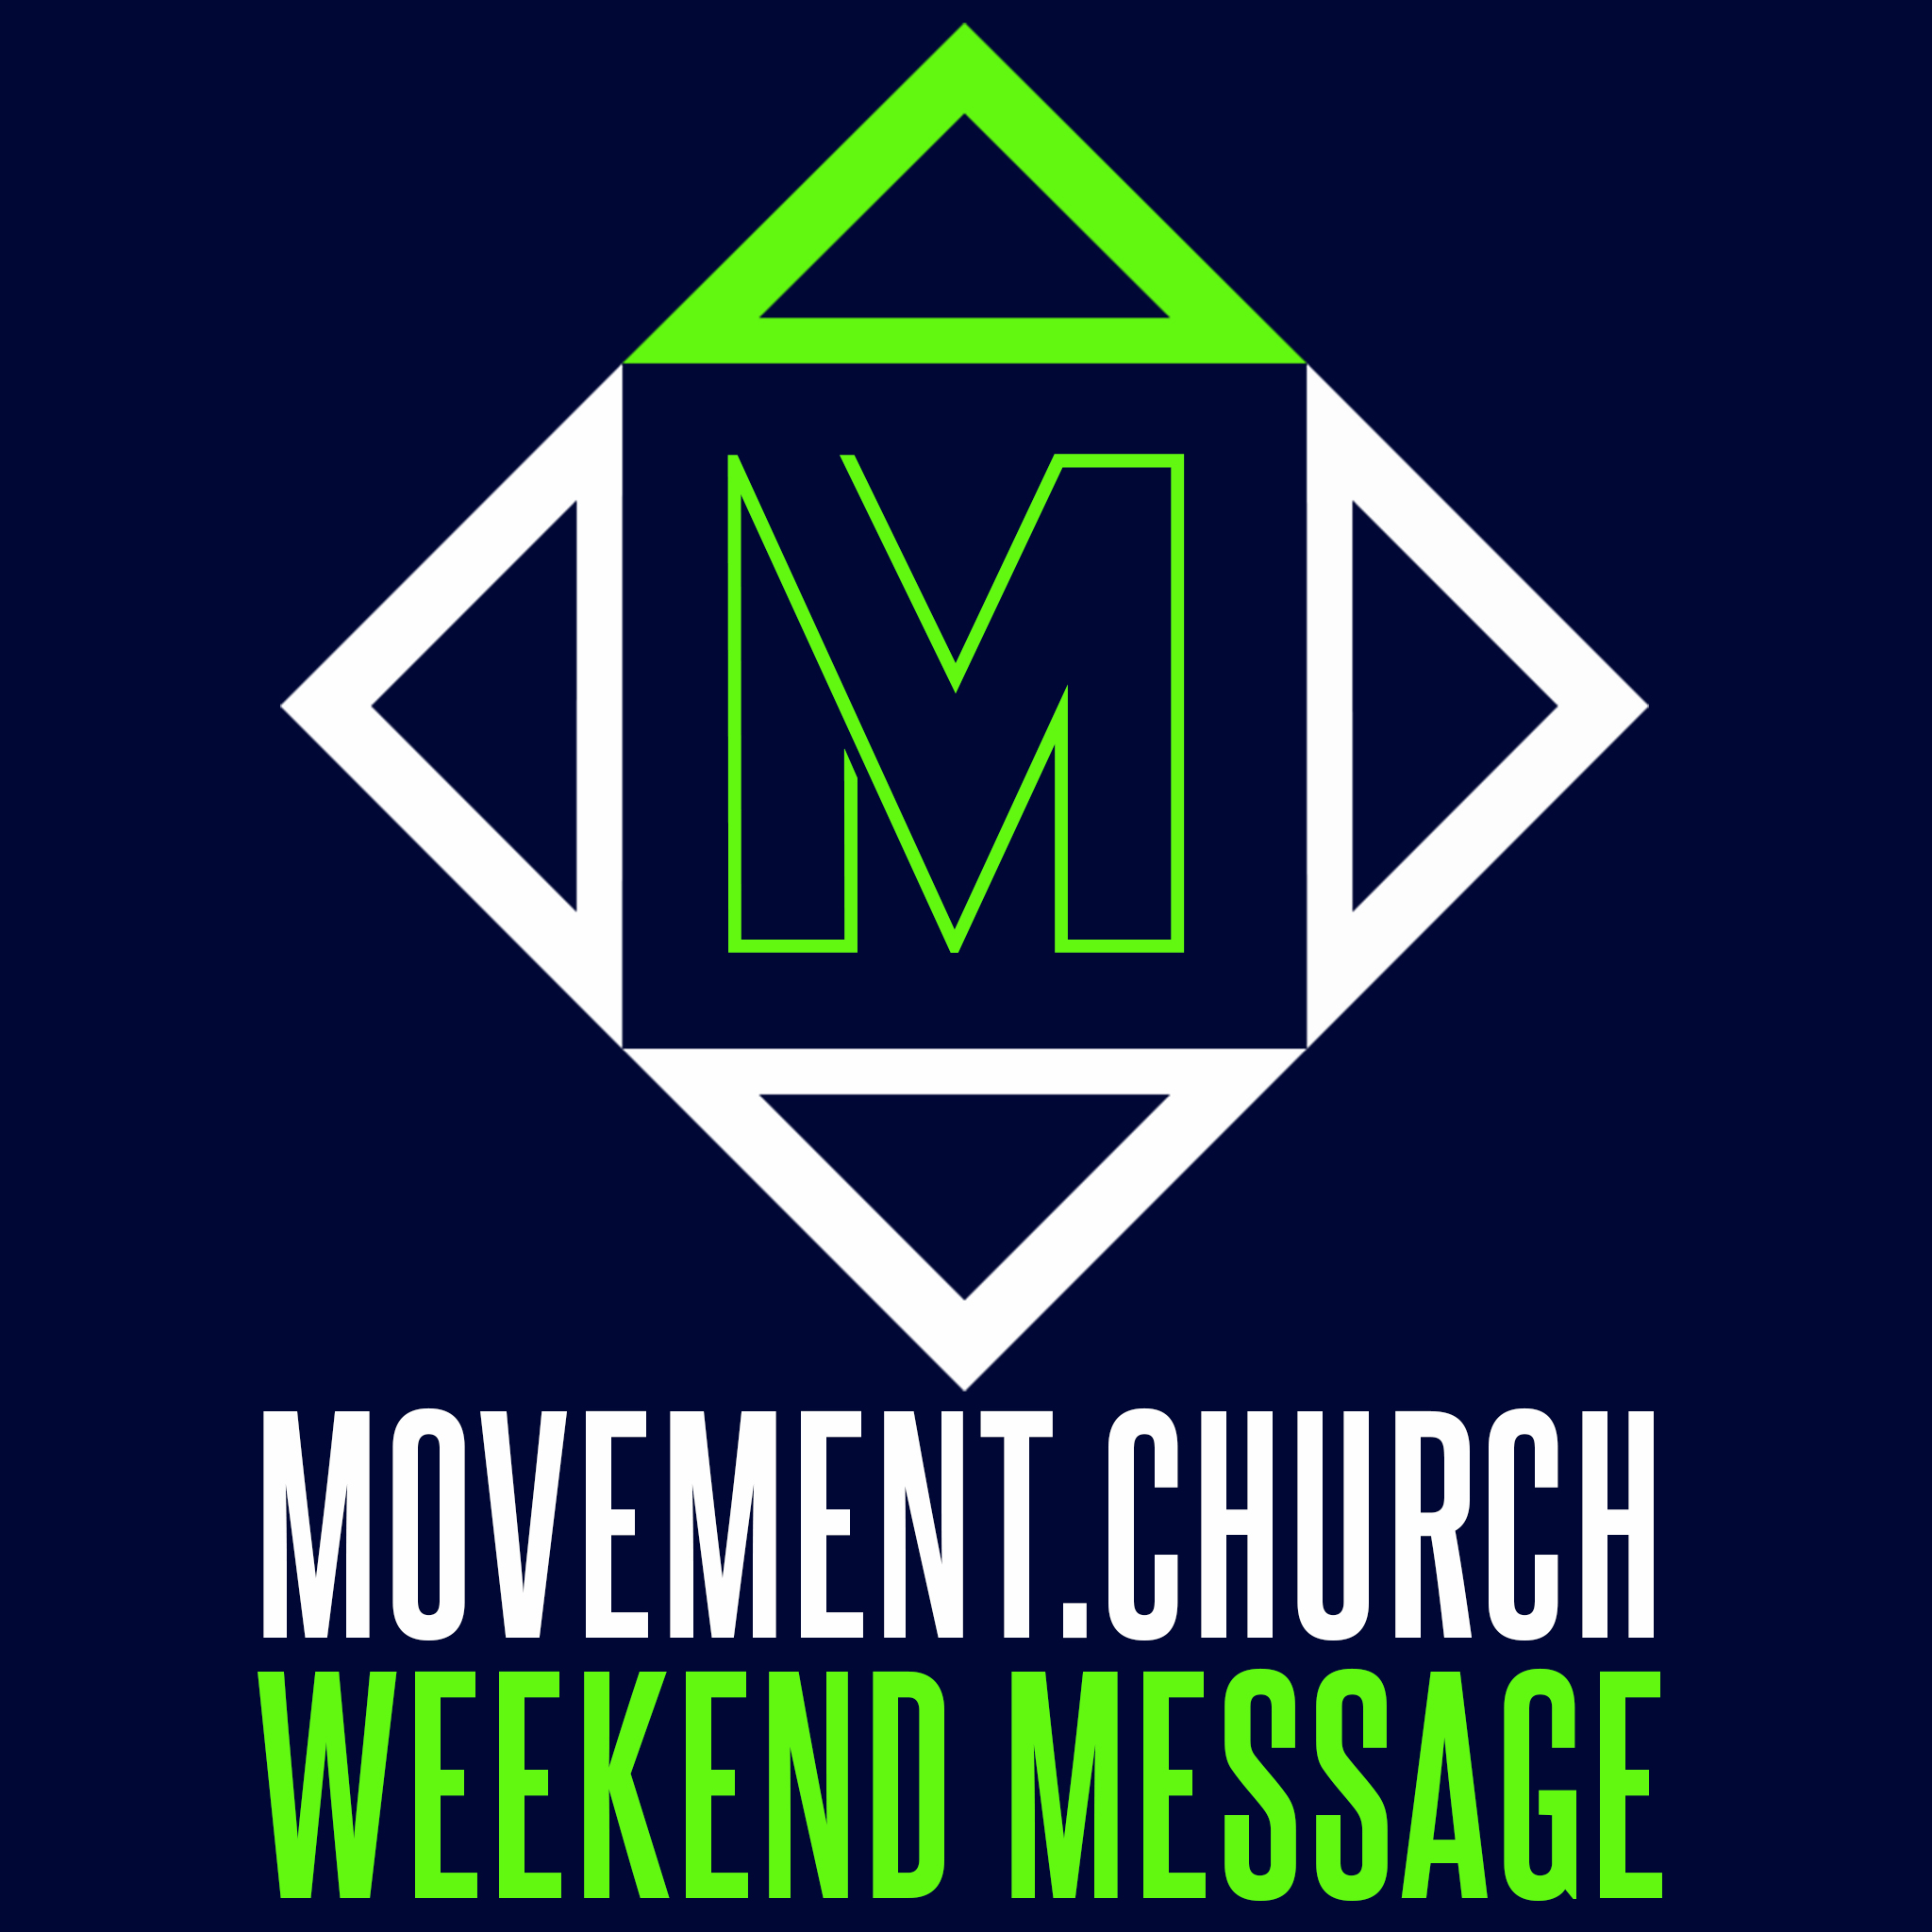 Movement Church Weekend Message